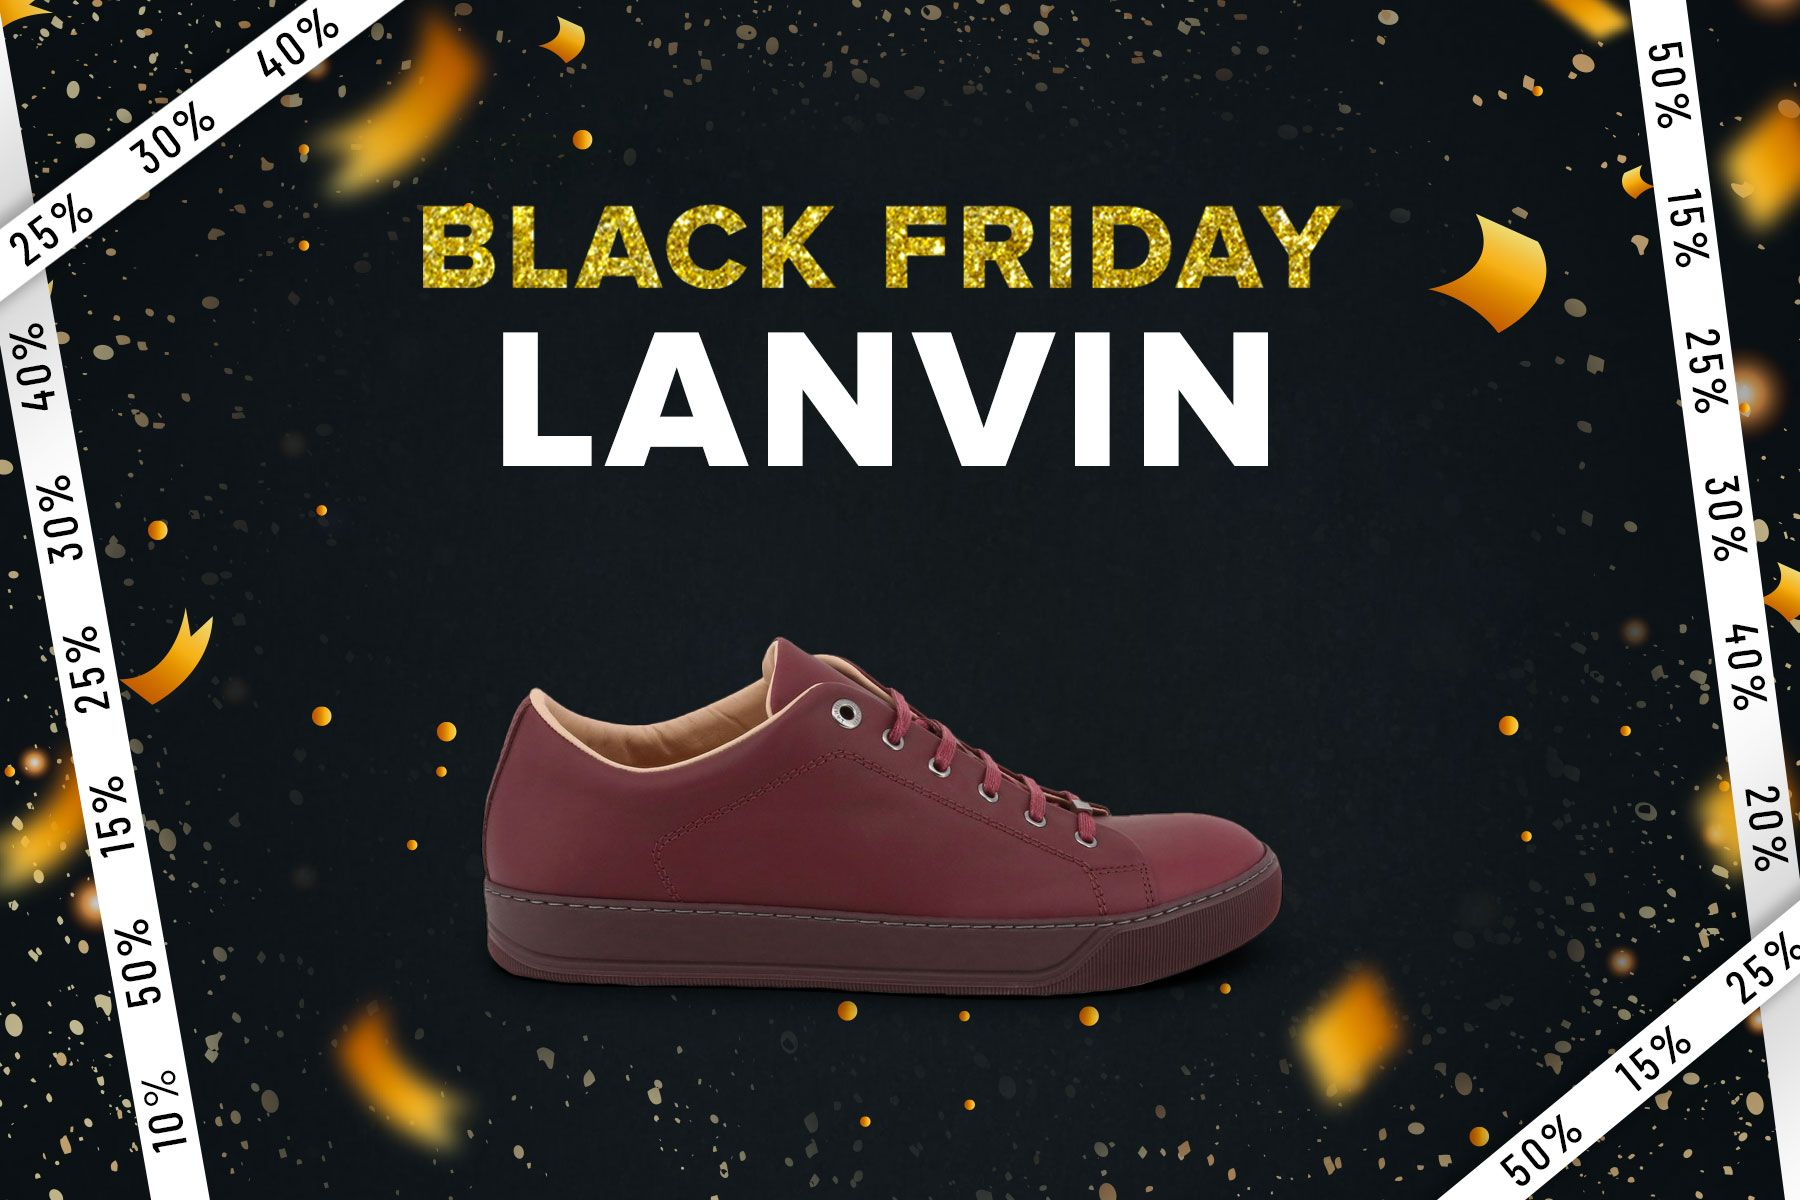 Lanvin Black Friday 2020